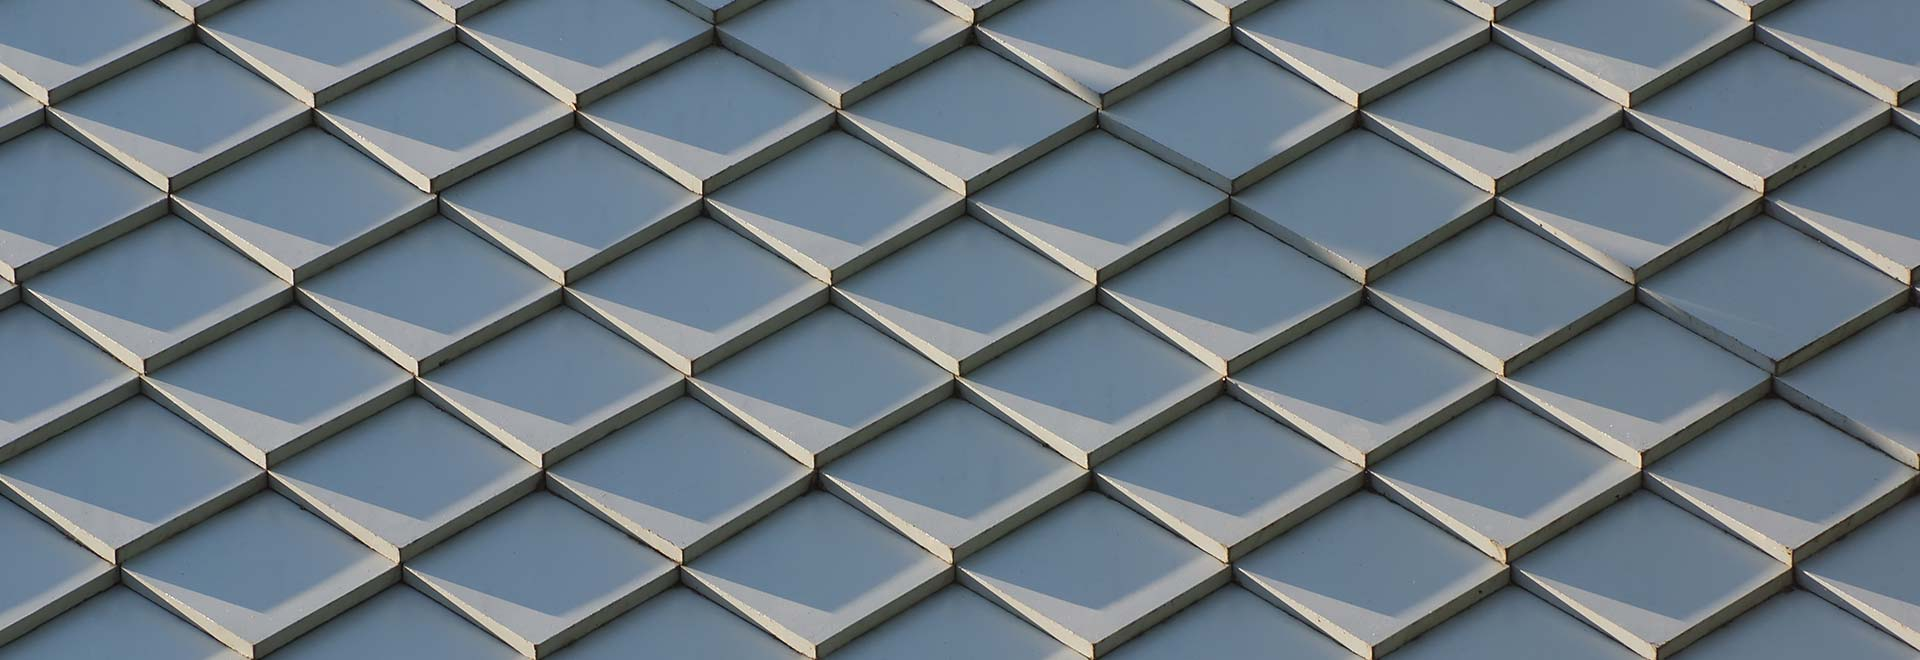 Frisco Roofing Shingles | Invictus Roofing